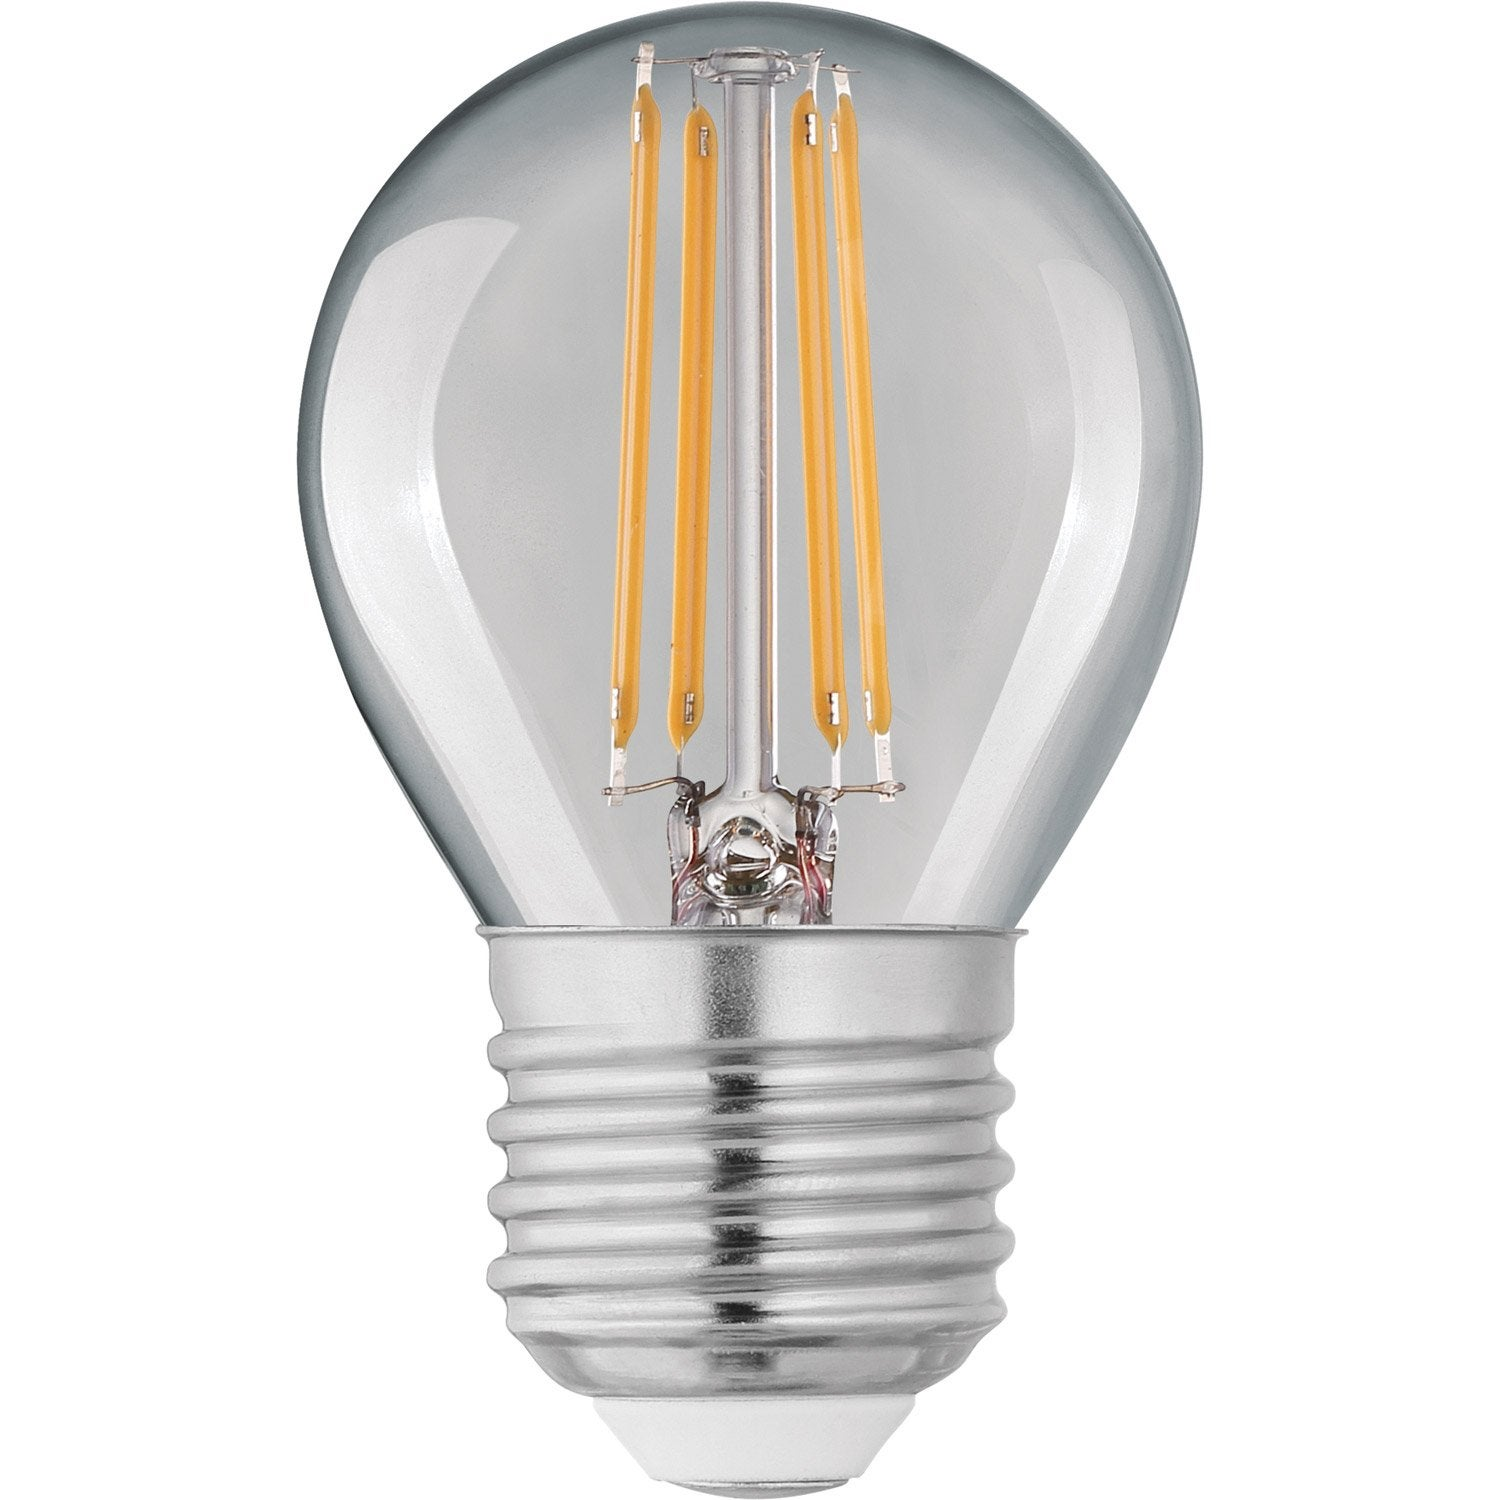 ampoule led filament awesome osram ampoule led filament. Black Bedroom Furniture Sets. Home Design Ideas